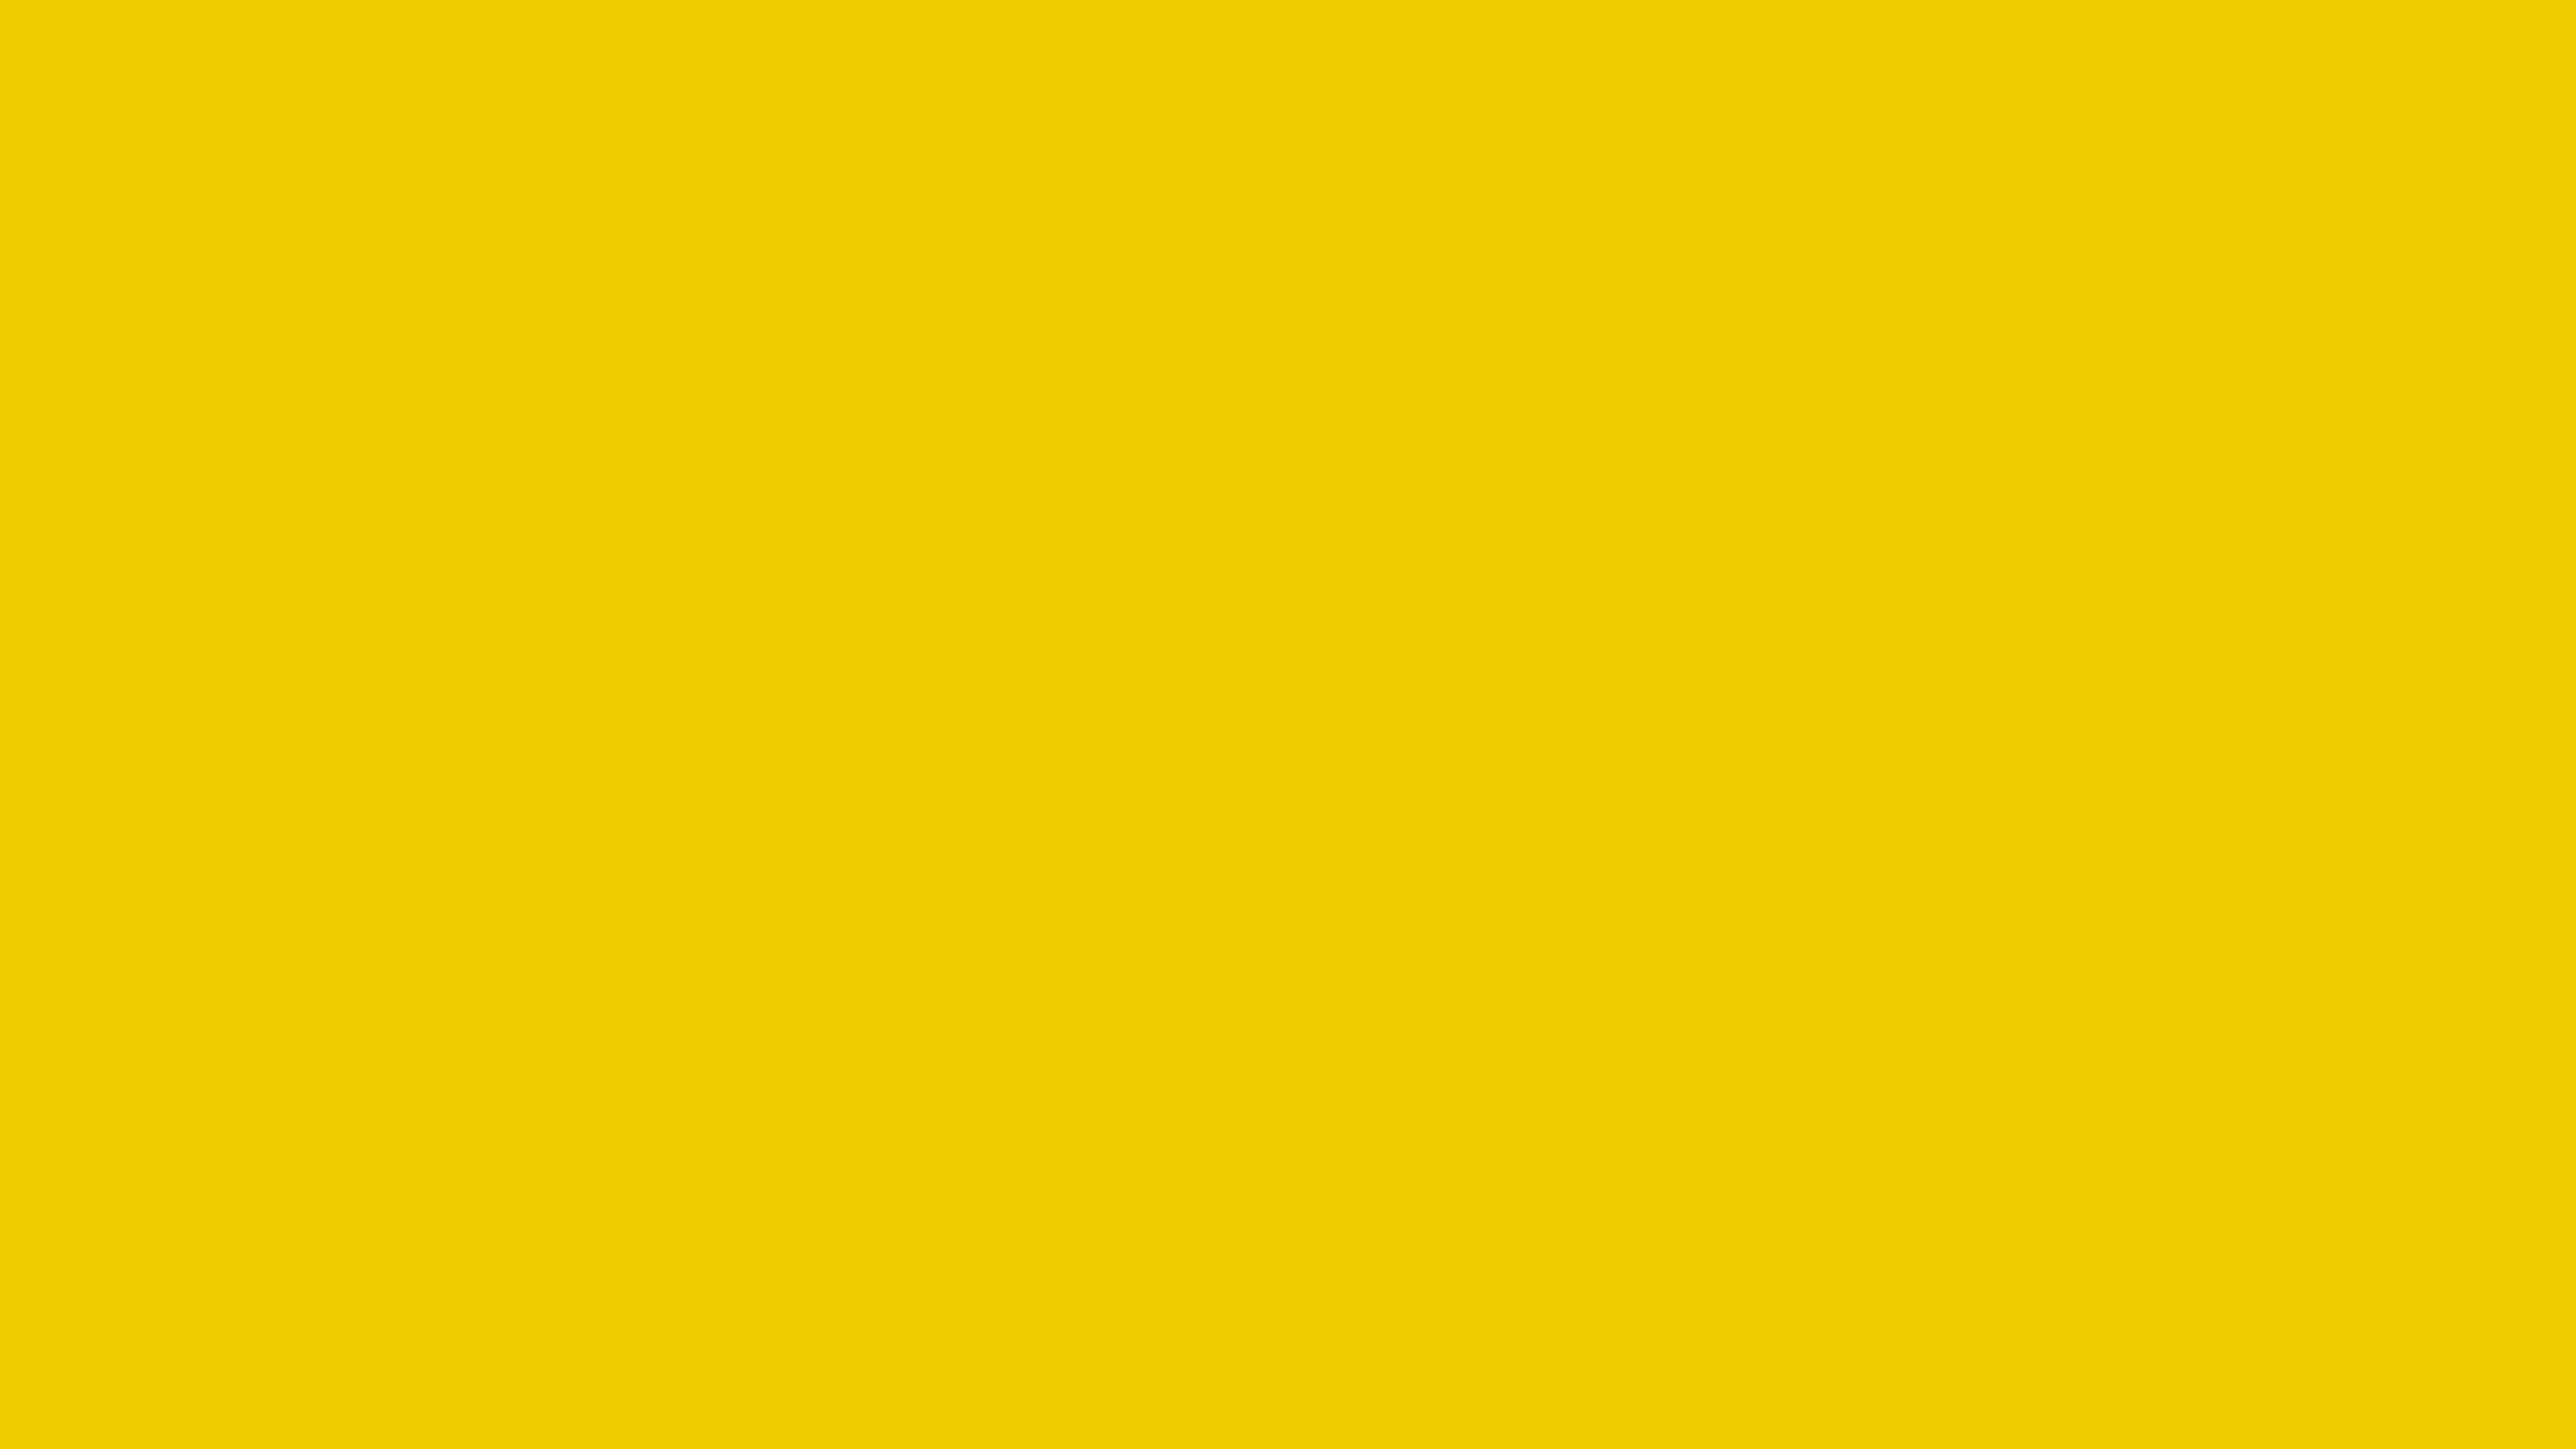 4096x2304 Yellow Munsell Solid Color Background